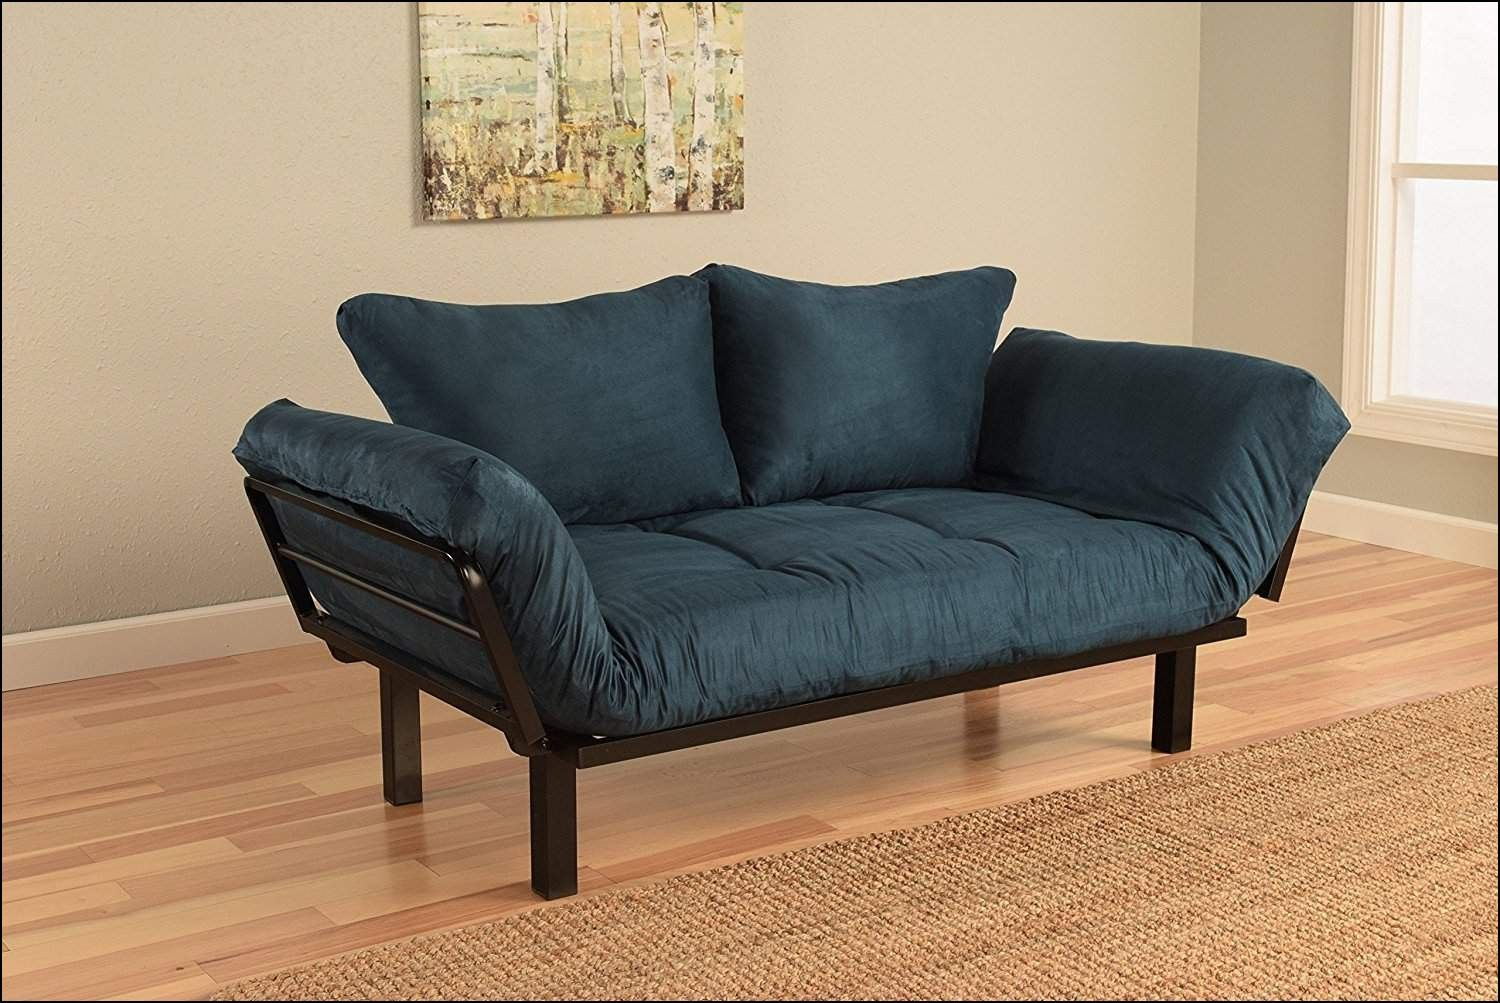 cheap sofa beds and futons cheap sofa beds and futons   couch  u0026 sofa gallery   pinterest      rh   pinterest